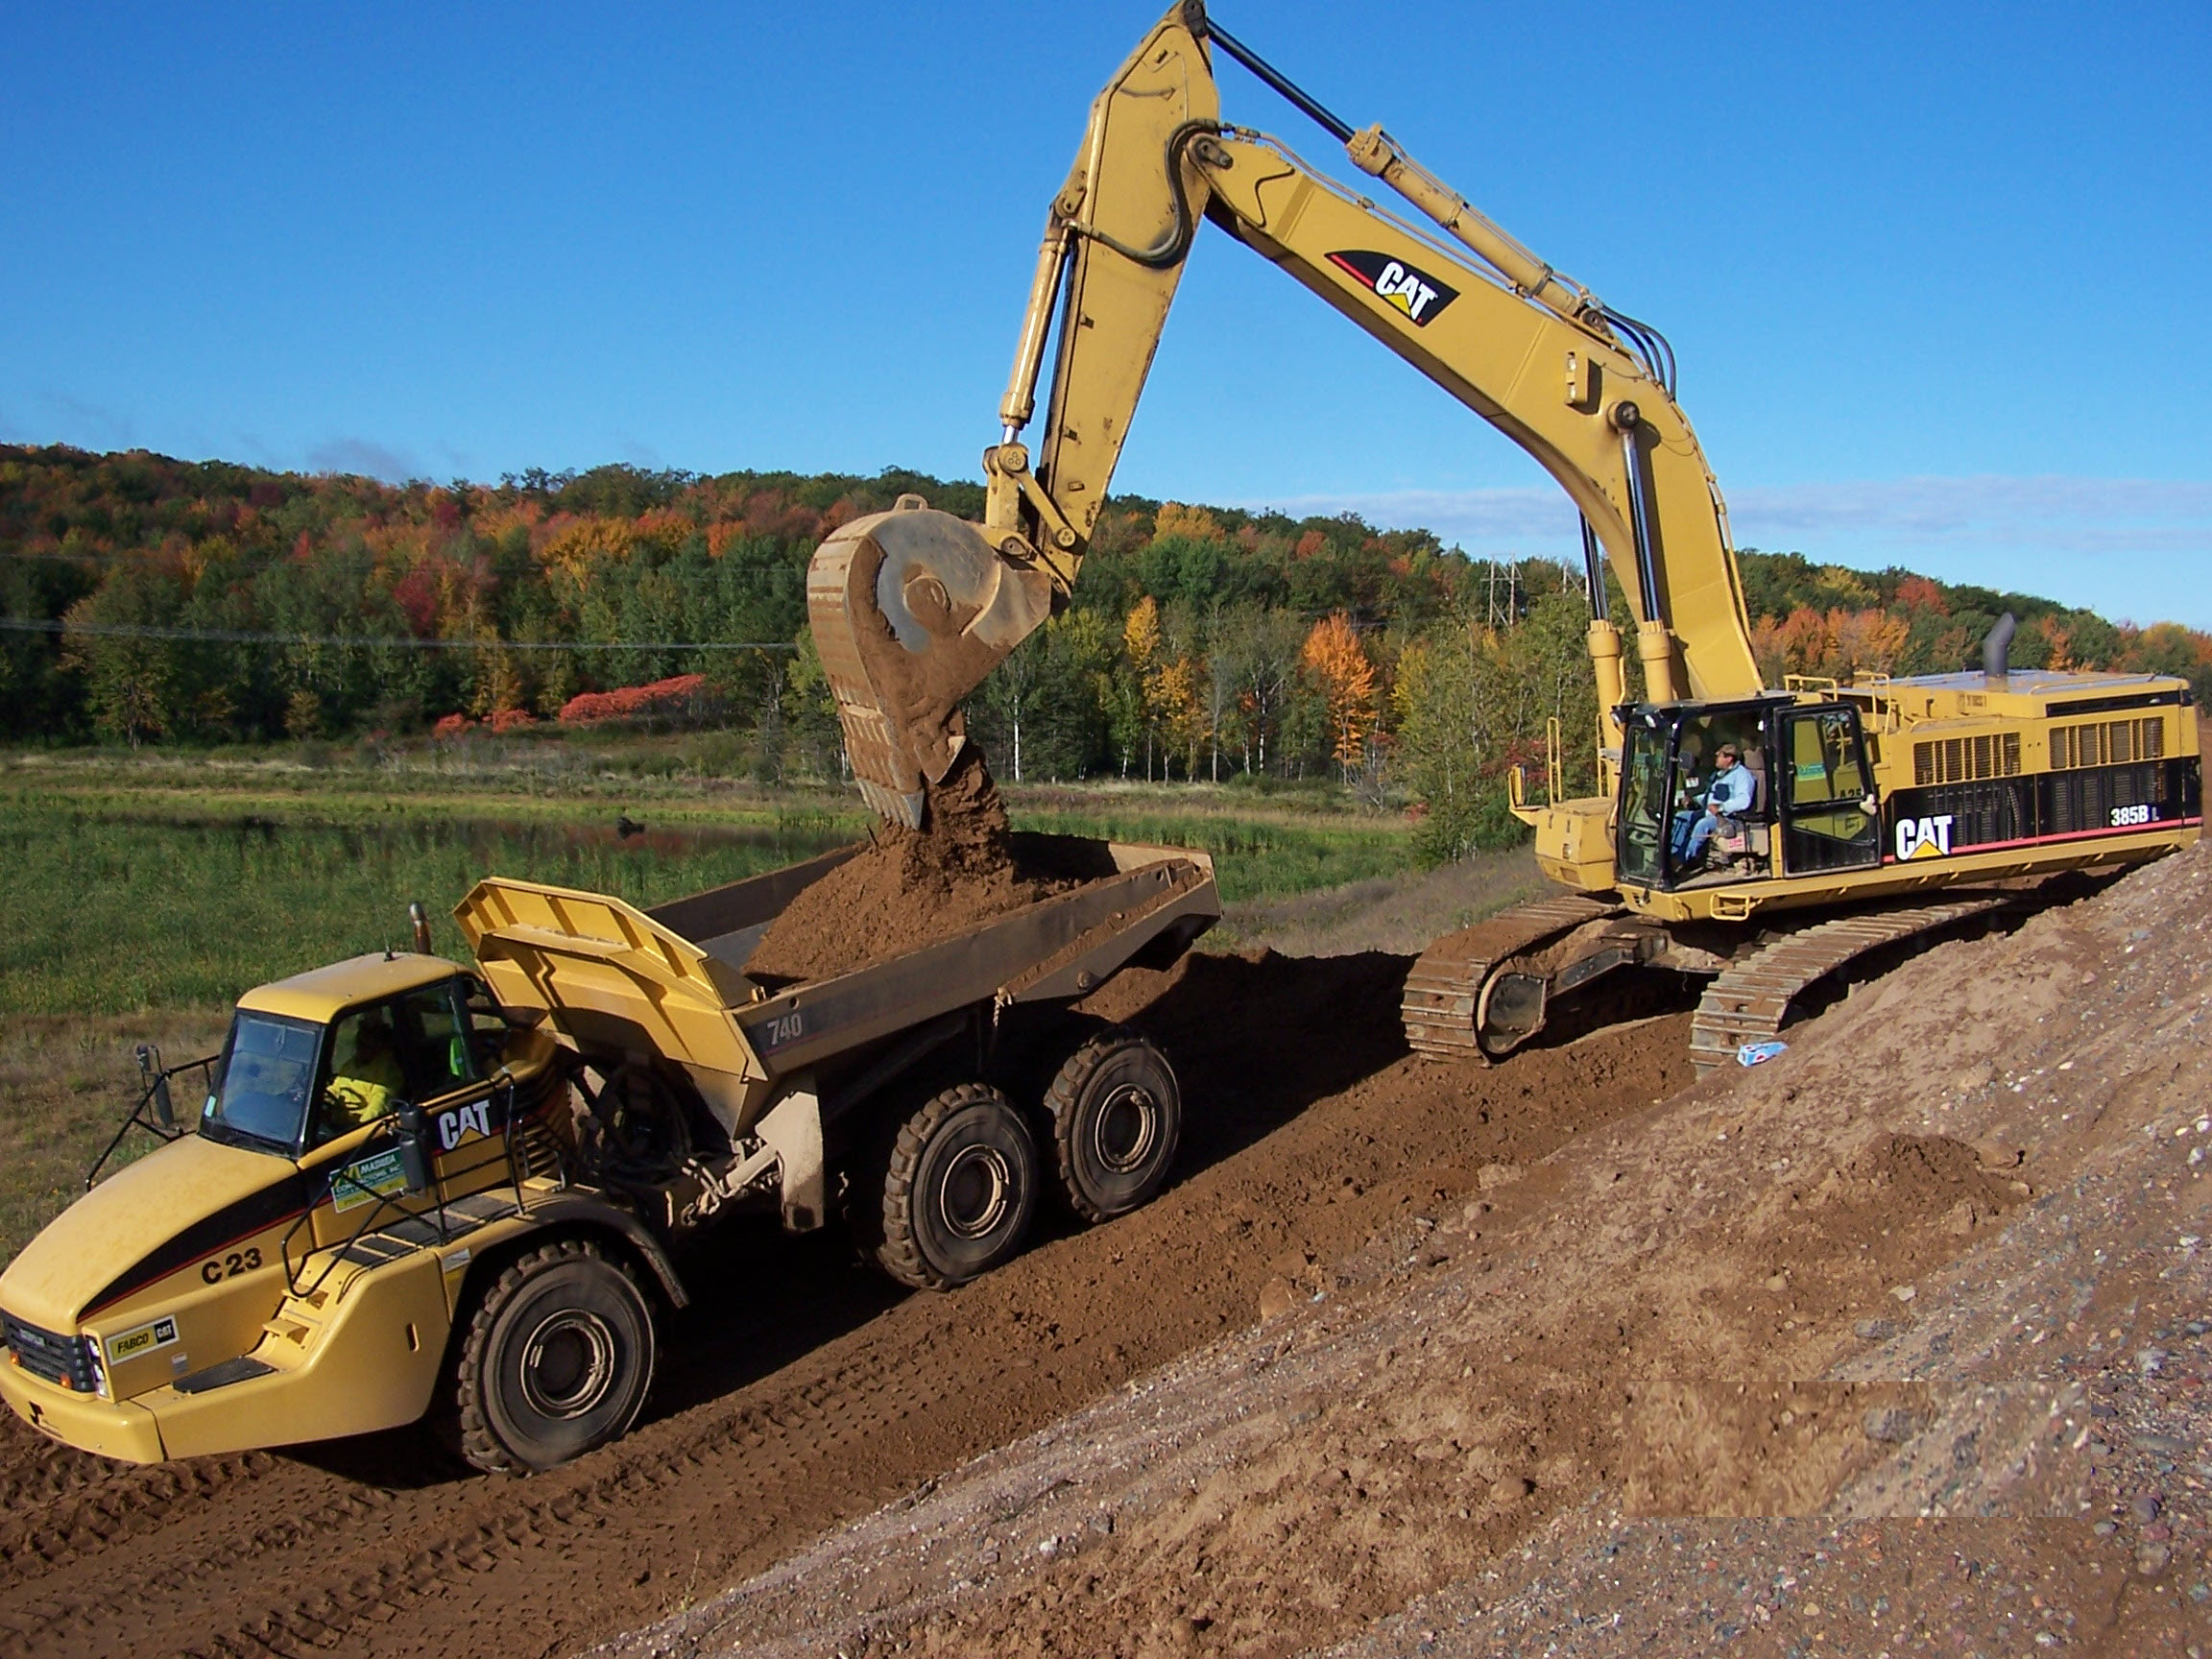 Articulated Truck and Excavator